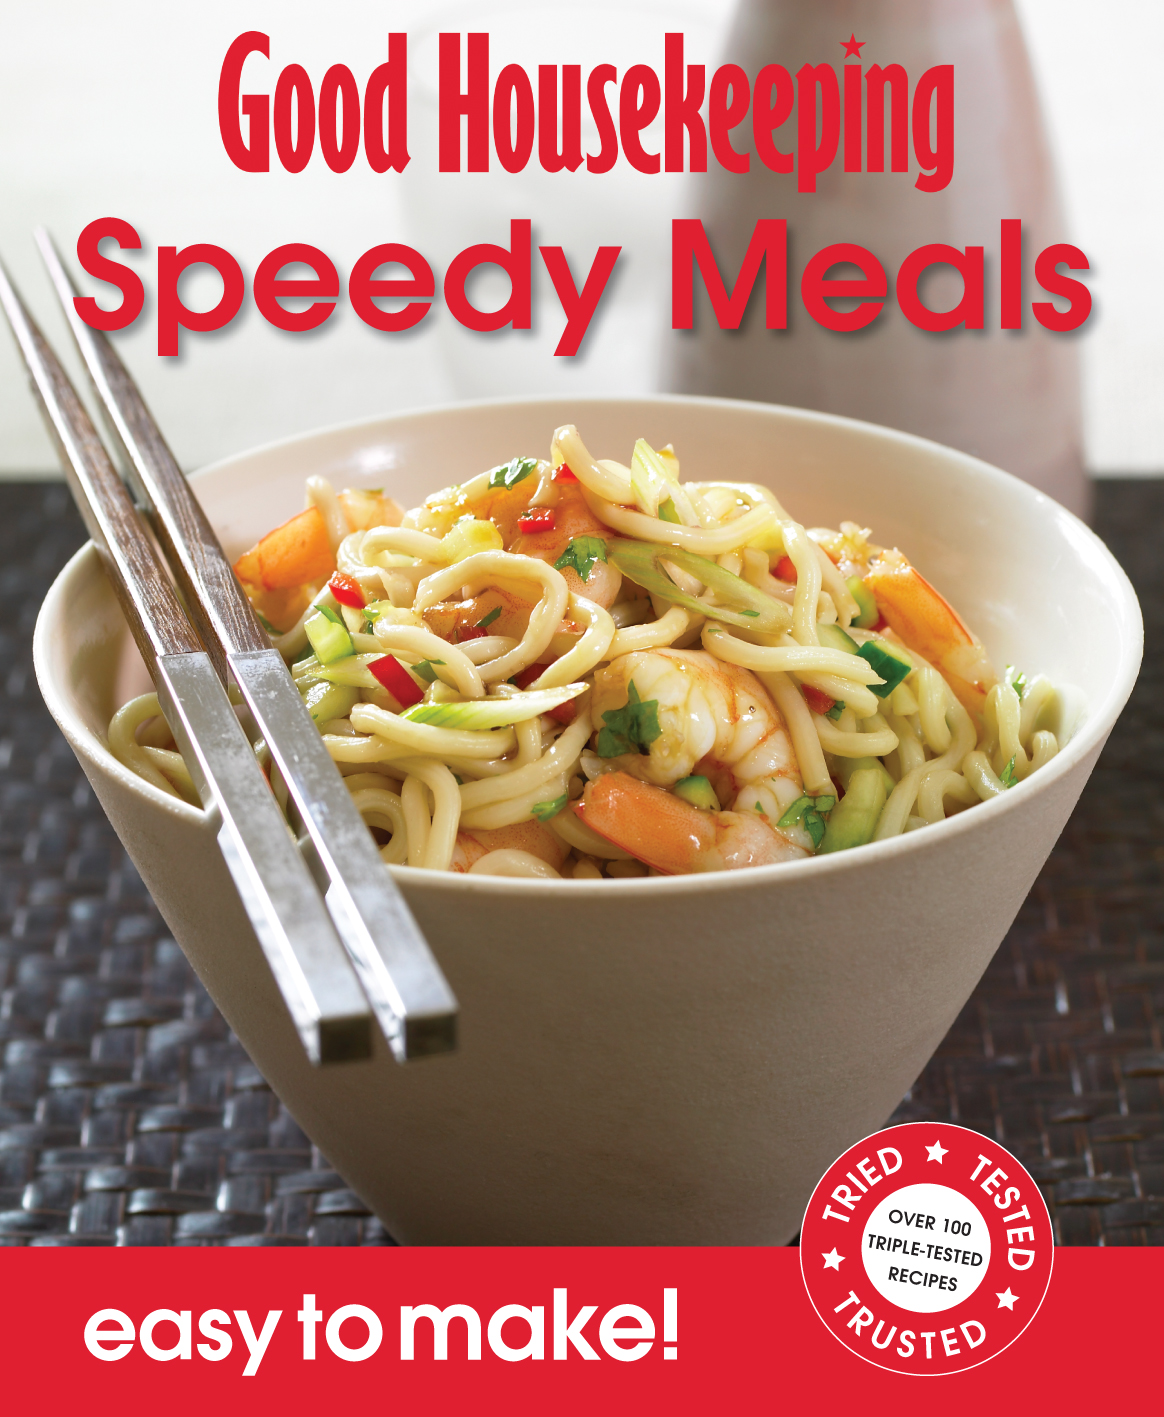 Good Housekeeping Easy to Make! Speedy Meals